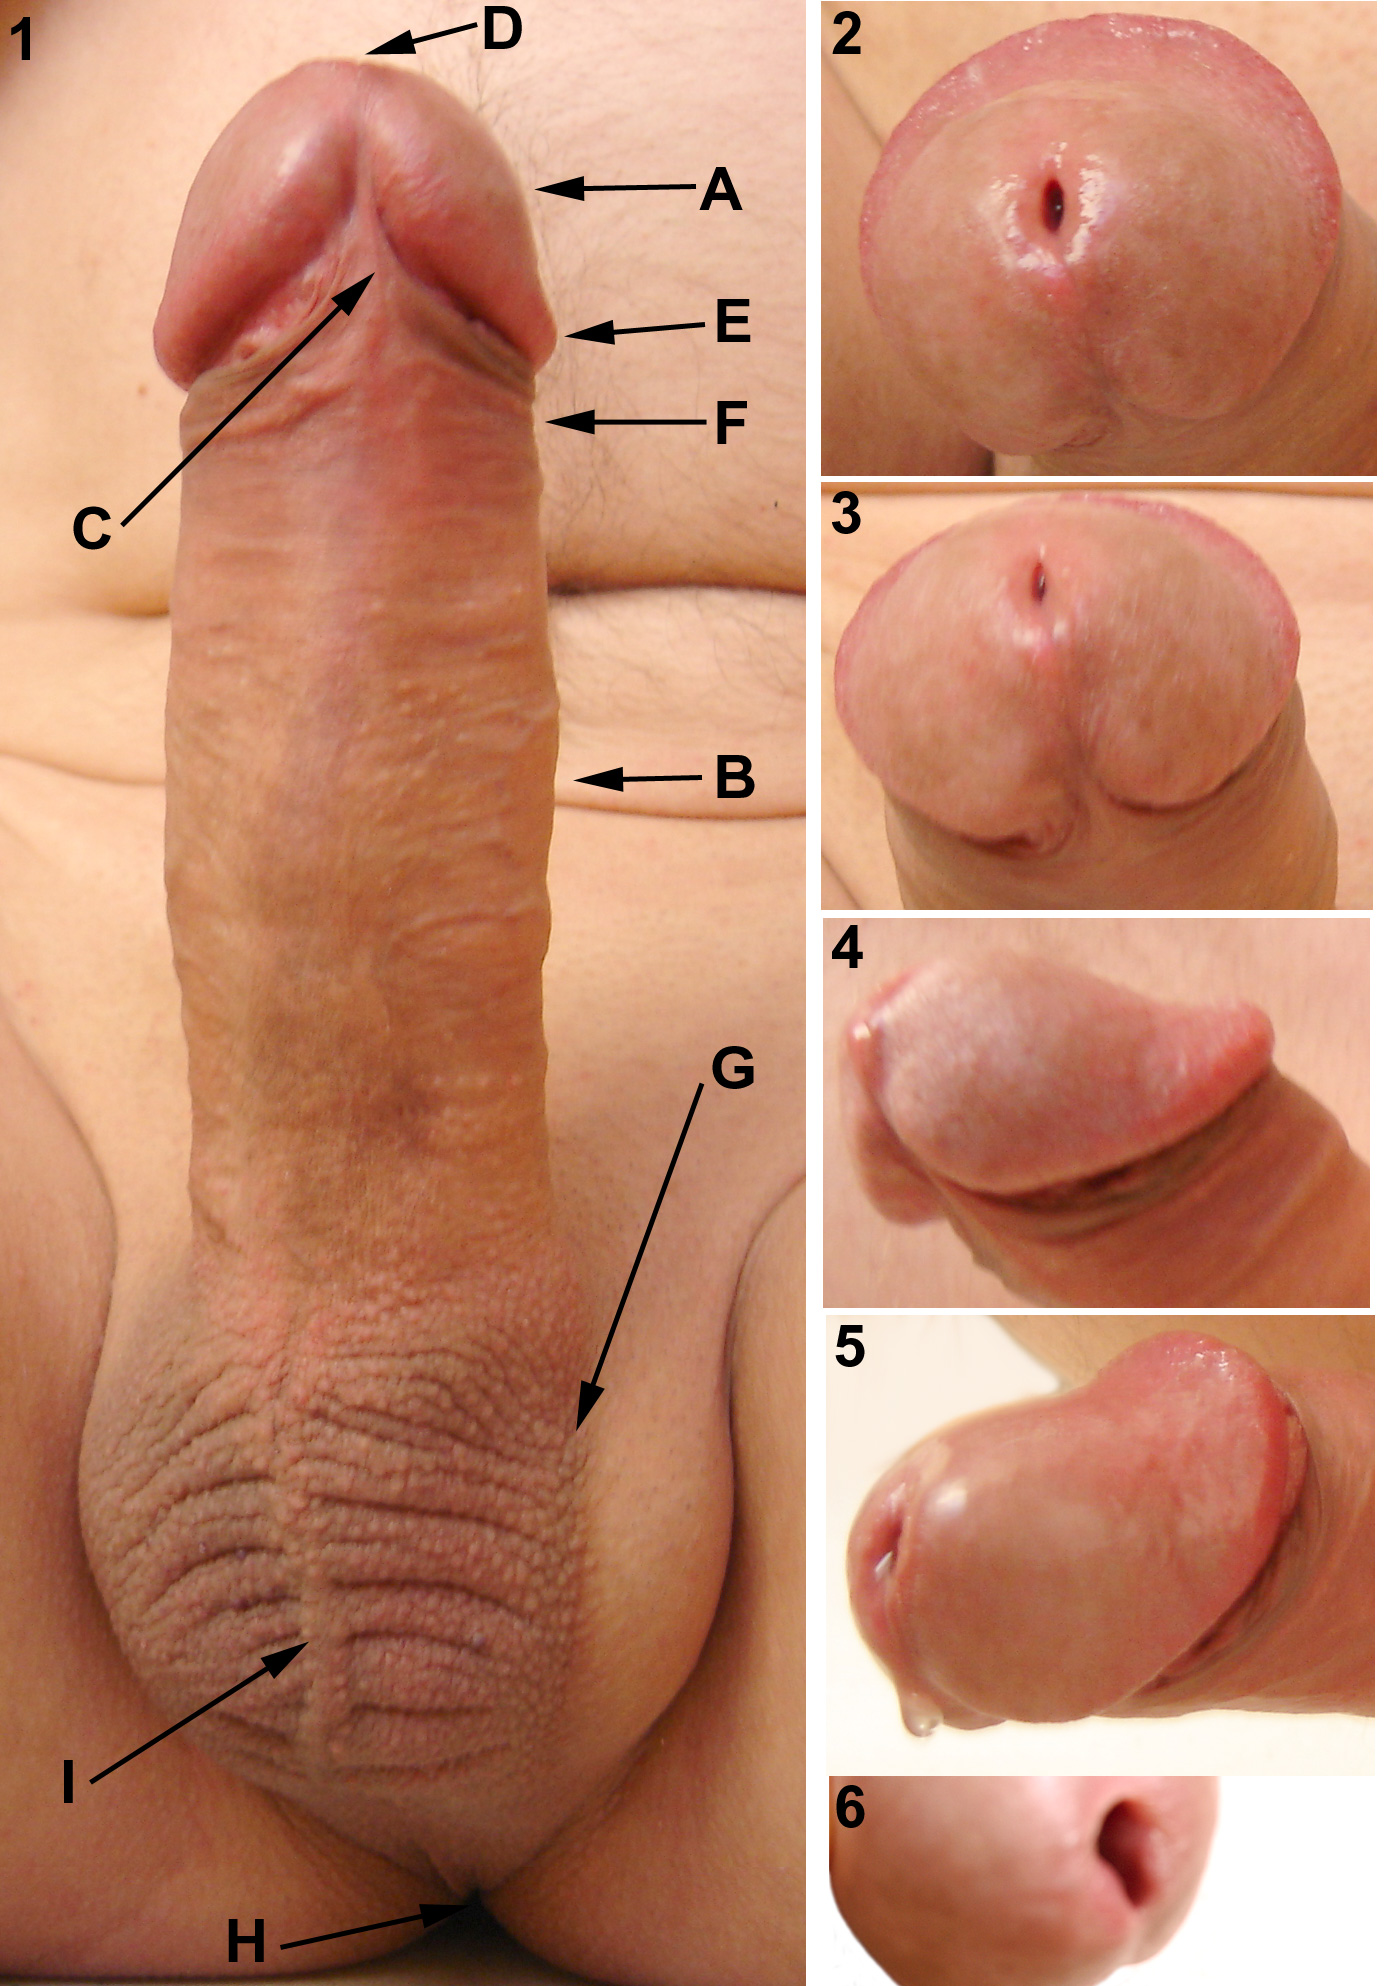 https://upload.wikimedia.org/wikipedia/commons/d/d9/Male-Genital-Anatomy-Erect-Glans-Close-Up.jpg